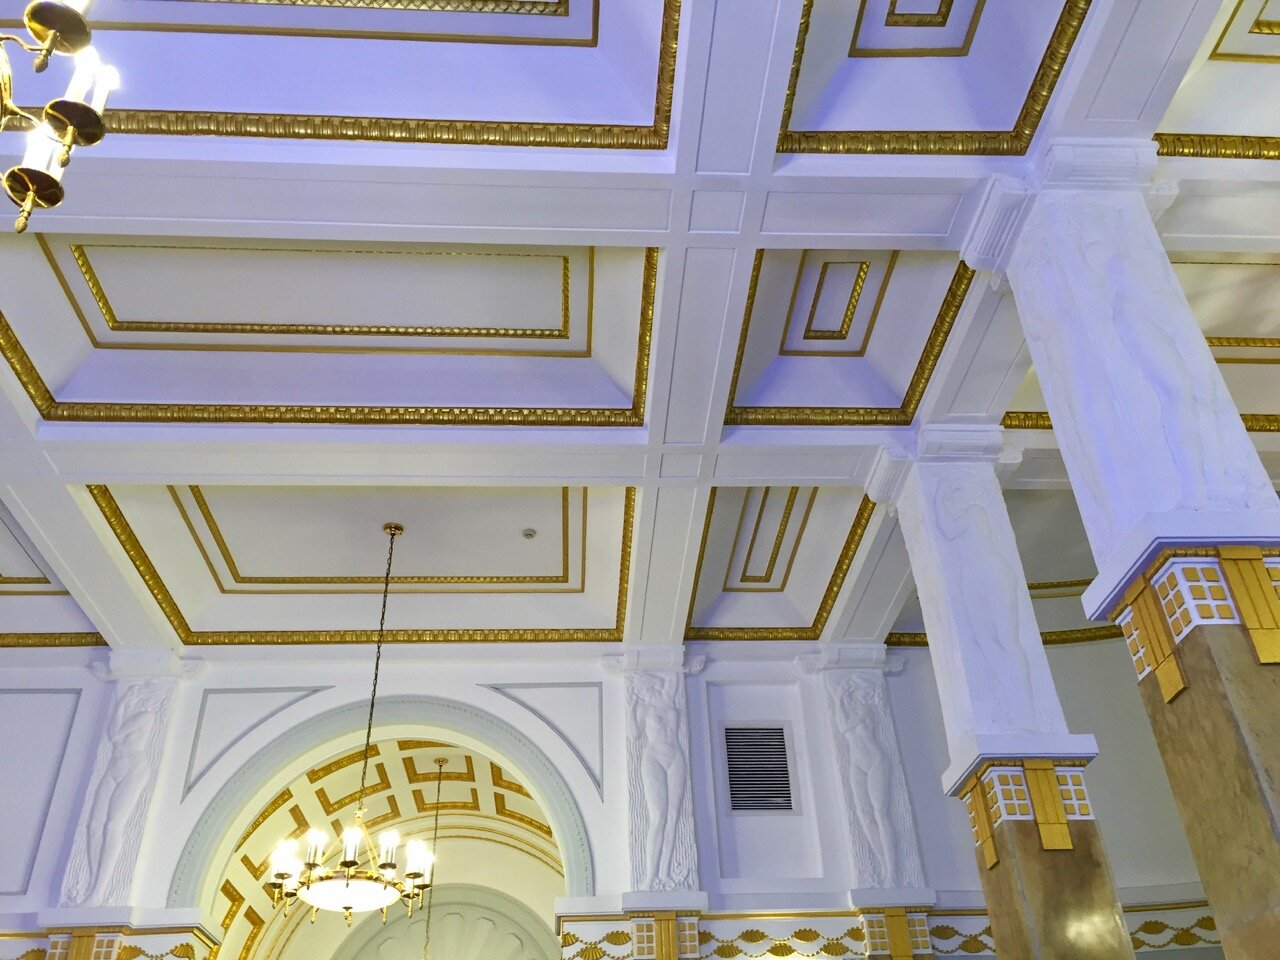 The grand hall leading to the second floor ballroom of the former French Club has kept its original design, including the caryatids (nude female bas relief figures) on the pillars holding up the ceiling.